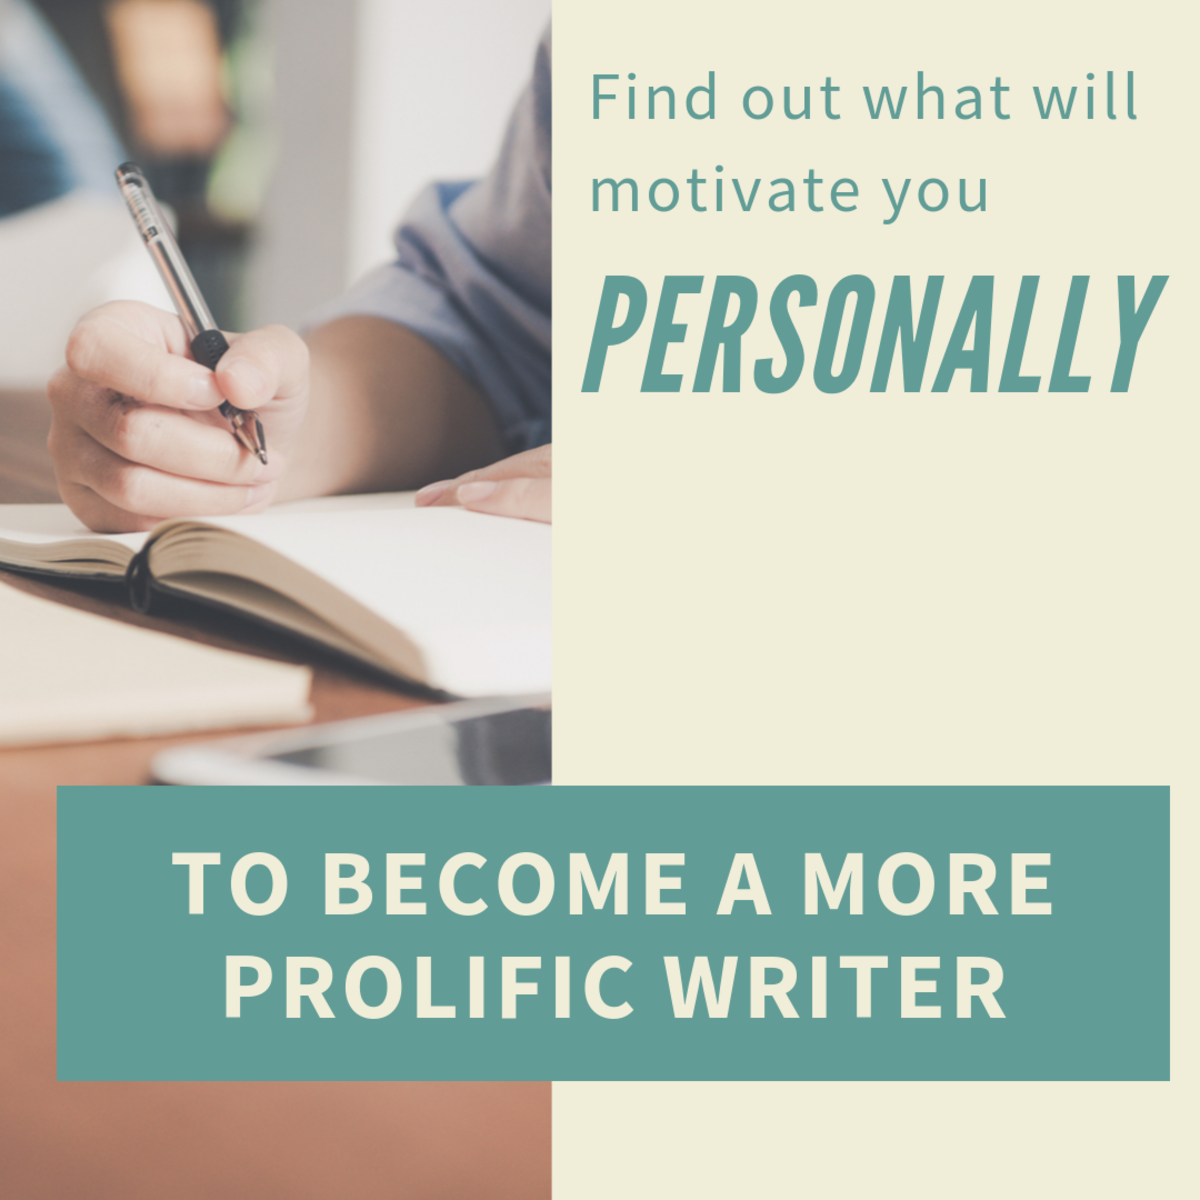 3 Steps to Find Your Ideal Motivation for Prolific Writing